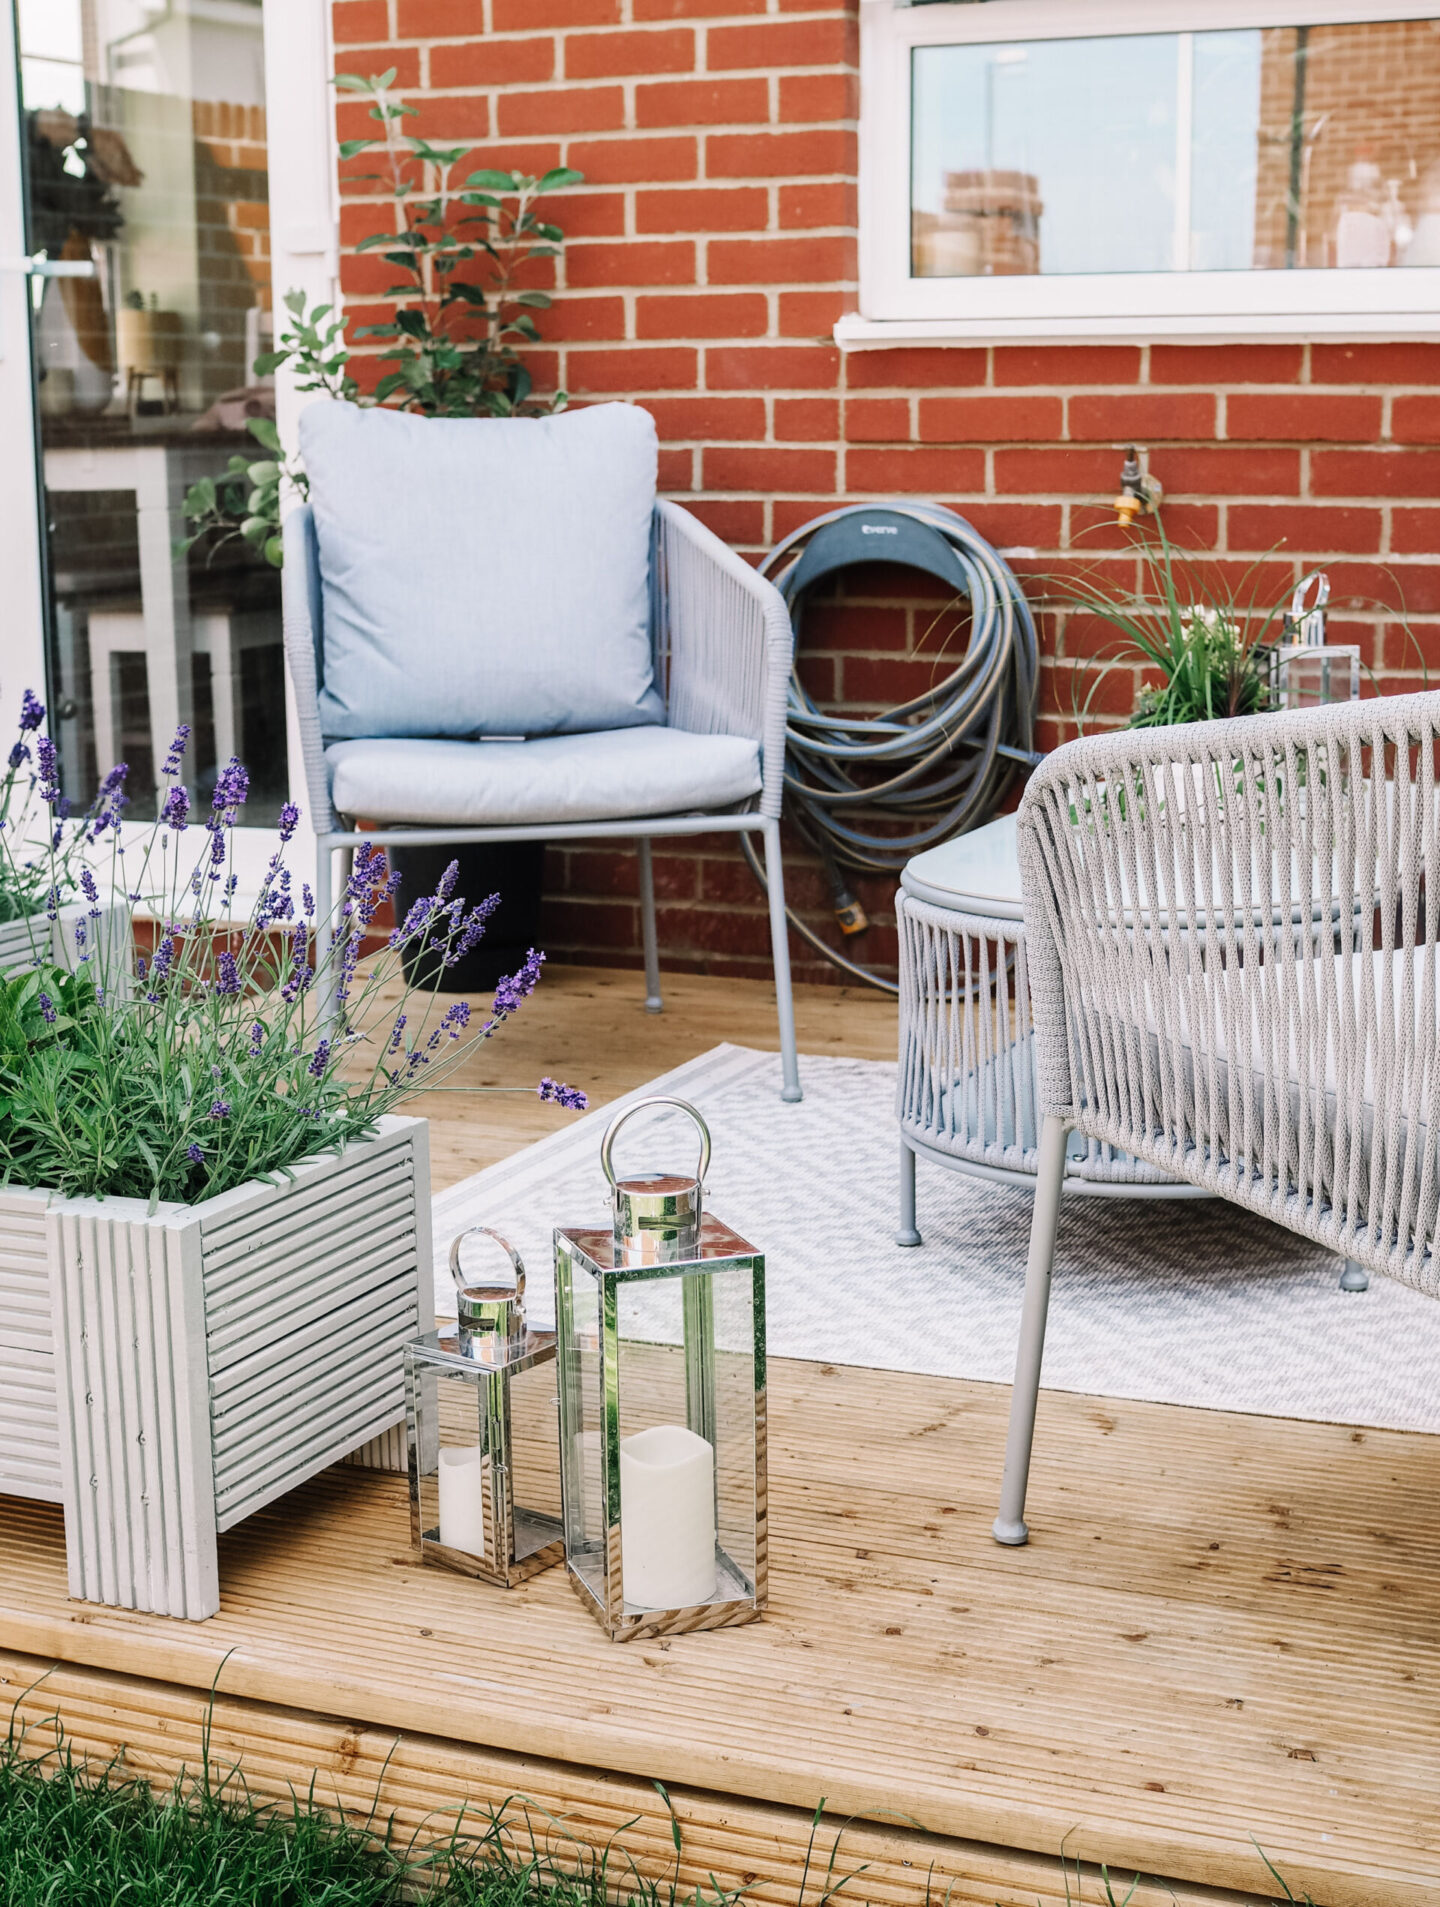 My Back Garden Makeover & Decking: A Small Space Rejuvinated